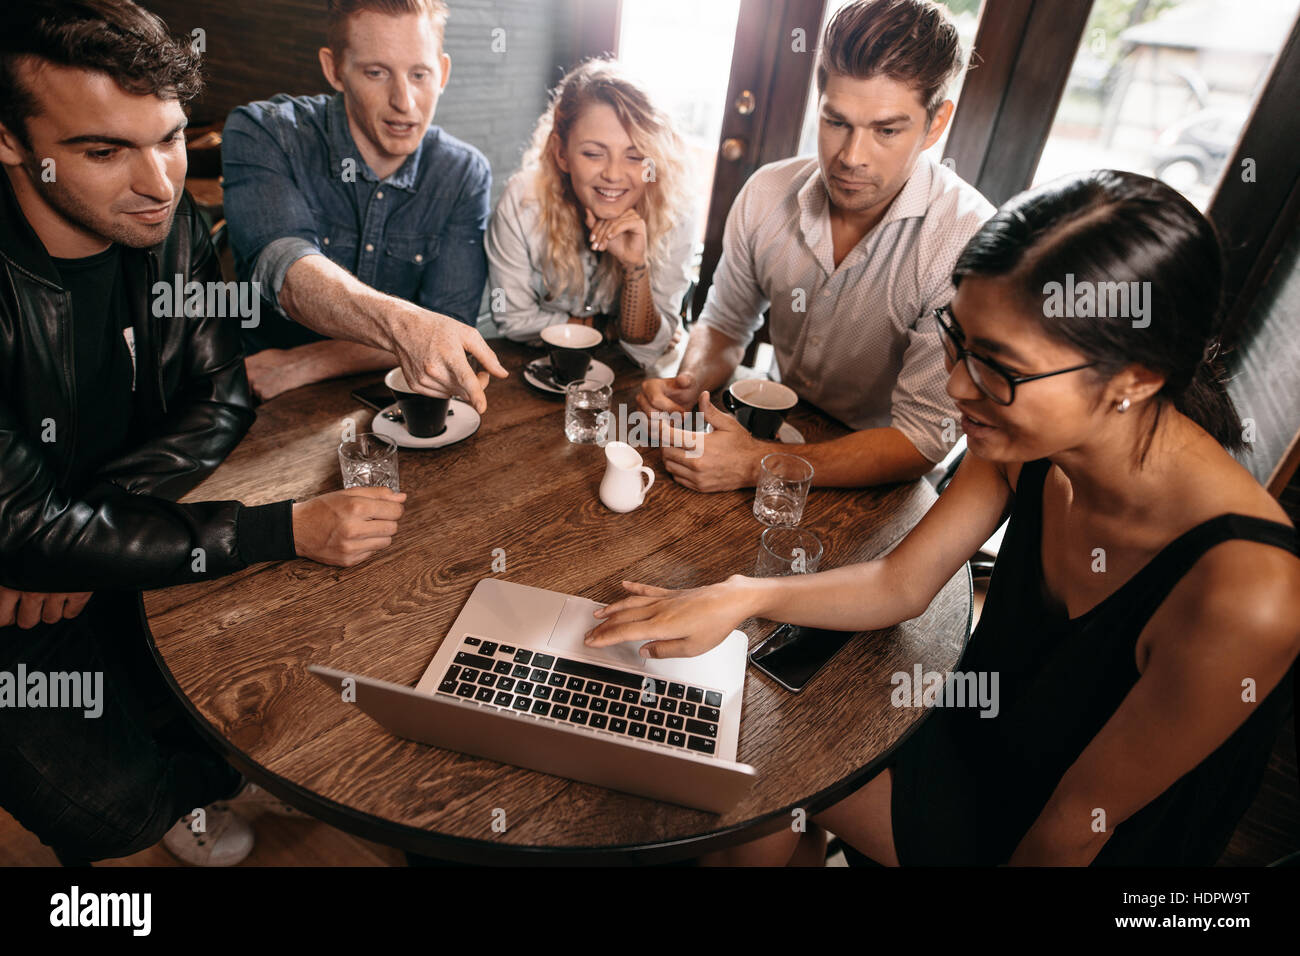 Diverse group of friends sitting together at cafe with man pointing at laptop. Five young people hanging out at Stock Photo